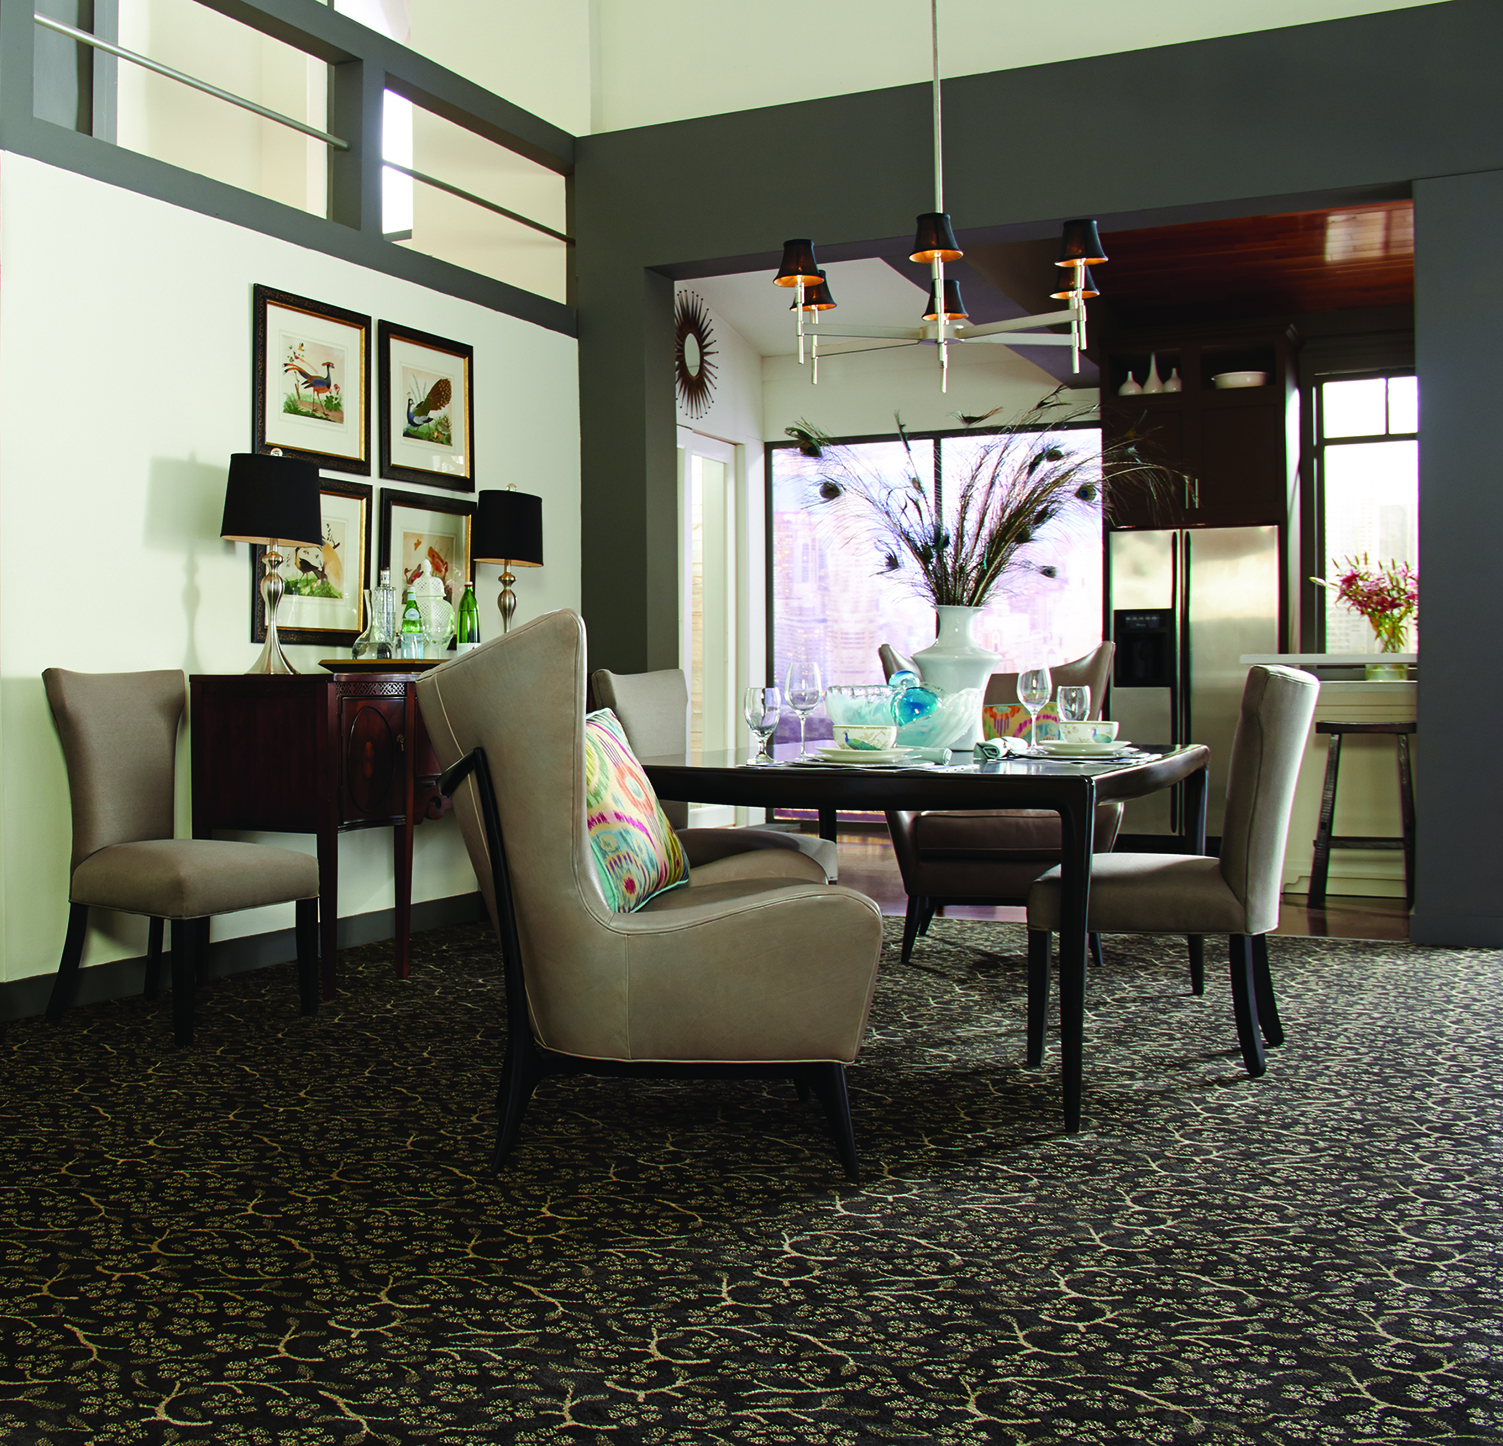 Flooring Products Traynor S Floors Amp Carpet Westminster Md